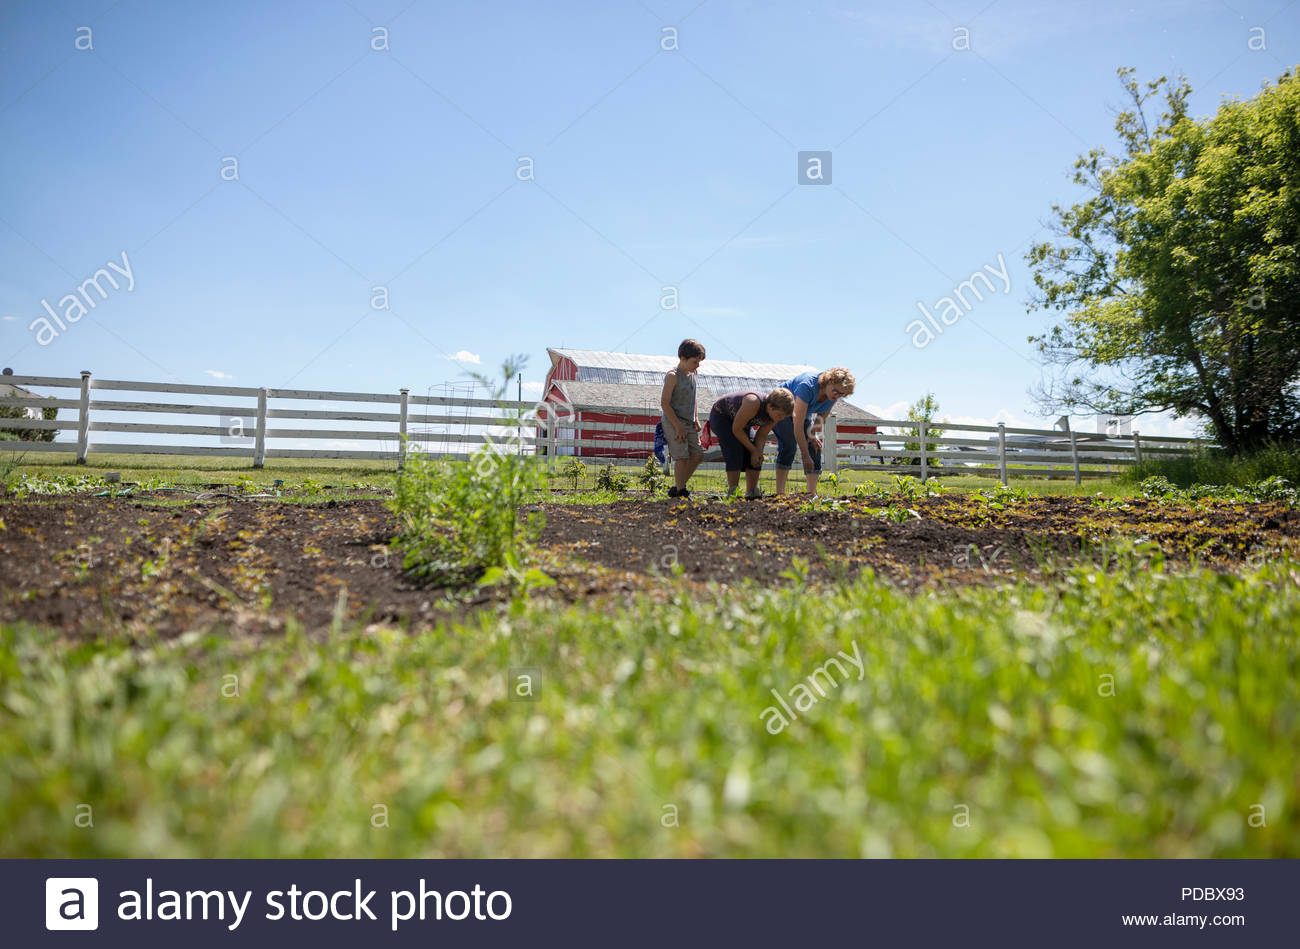 Grandmother and grandsons gardening on sunny rural farm - Stock Image